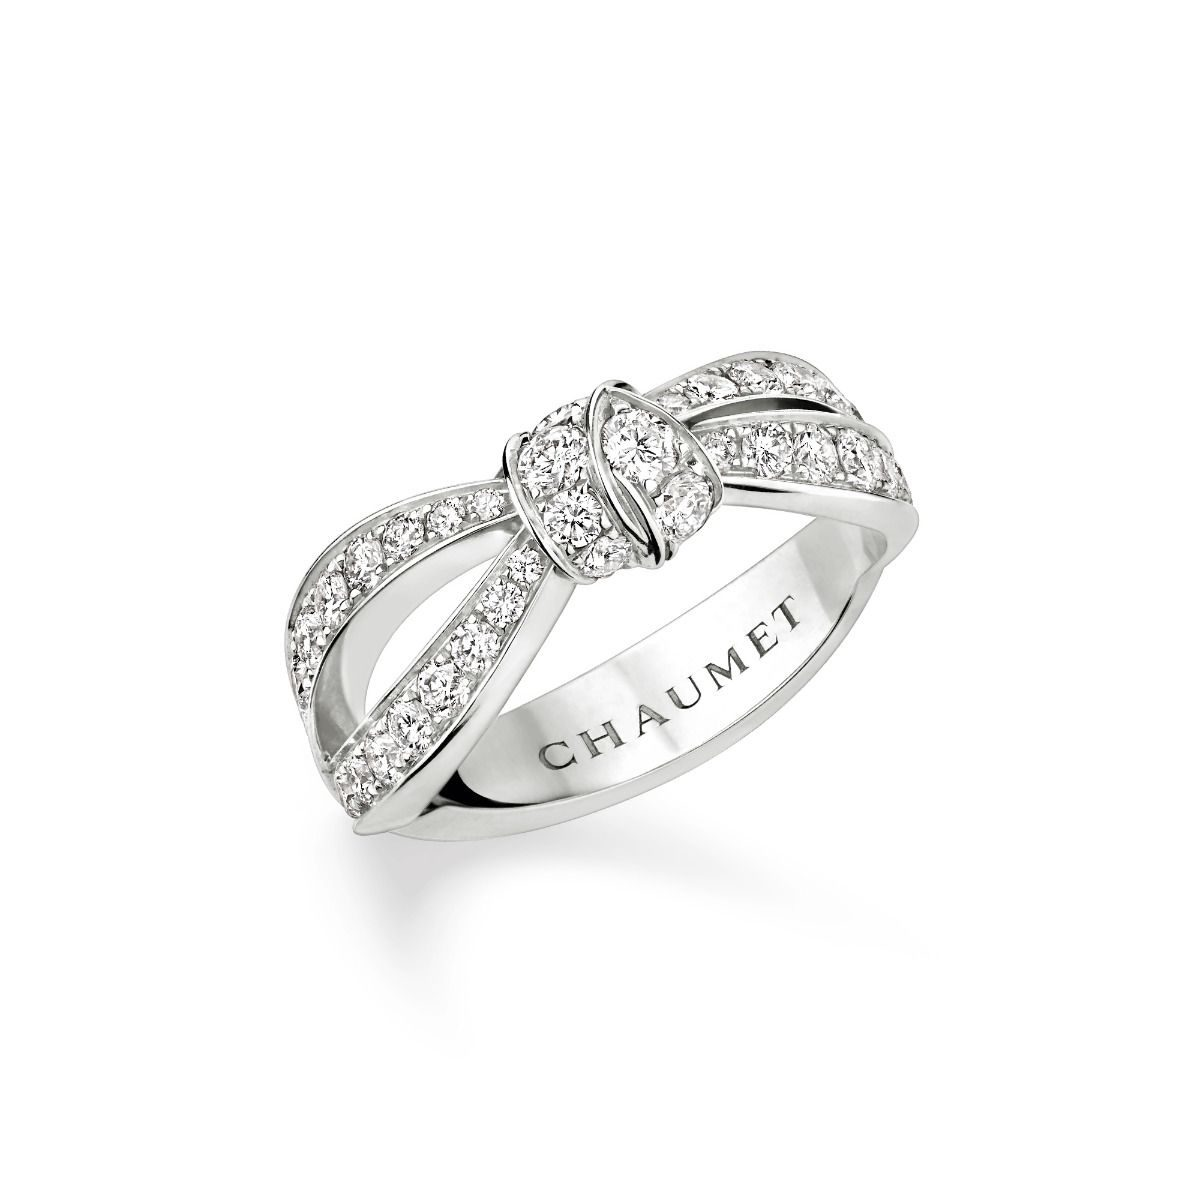 chaumet_083054_liens_seduction_wg_dia_ring_-side_view_cmjn_1.jpg